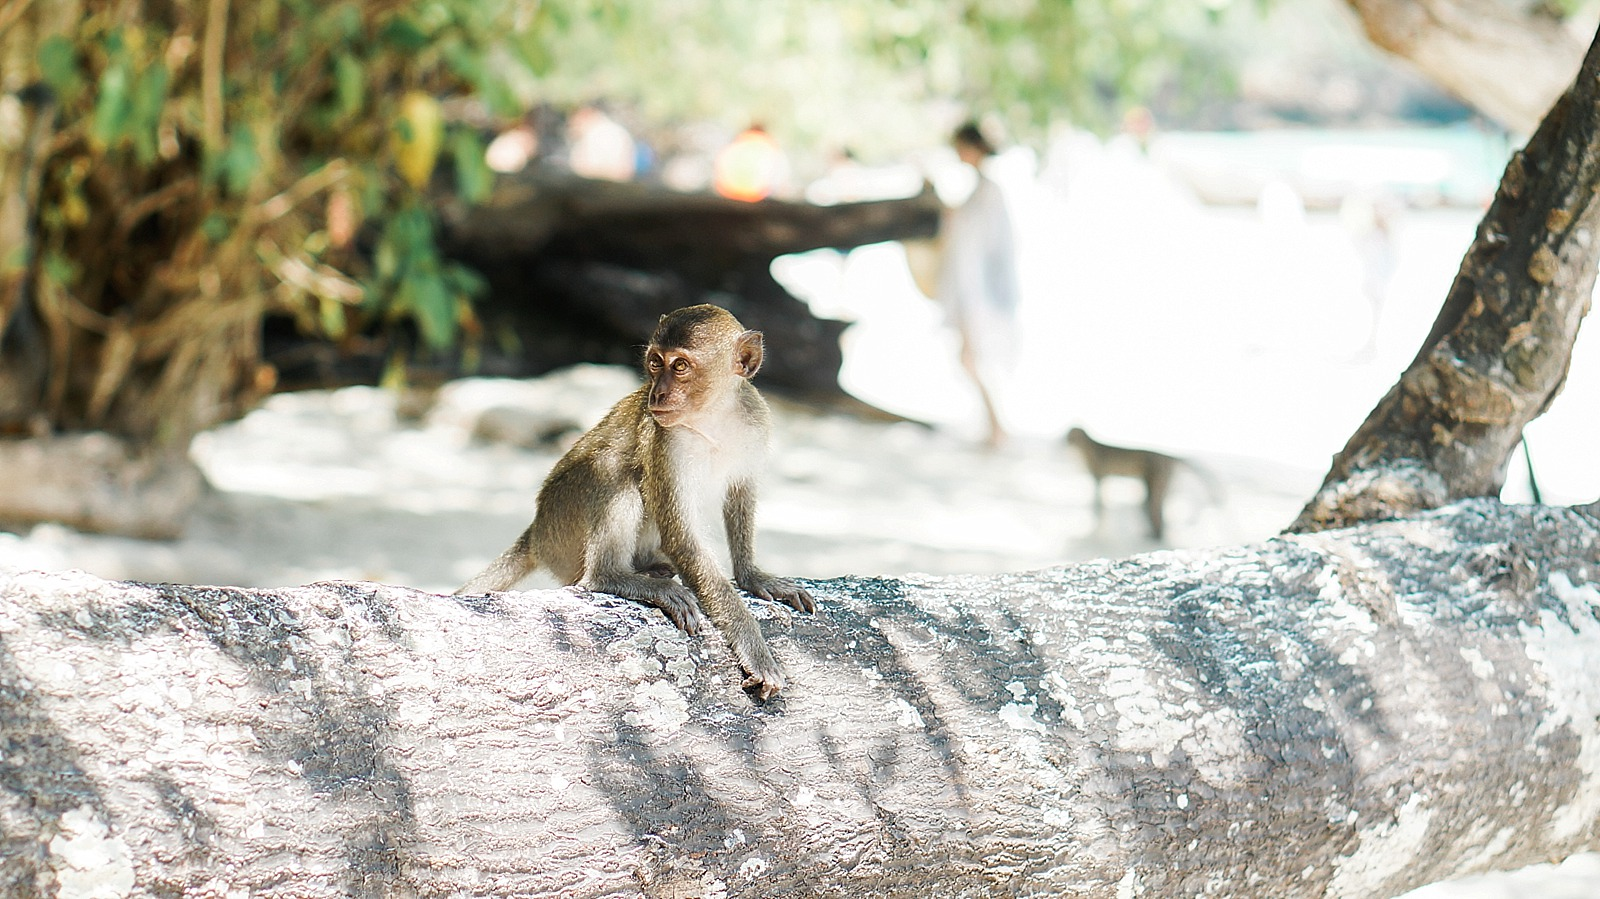 monkey on monkey beach in Thailand